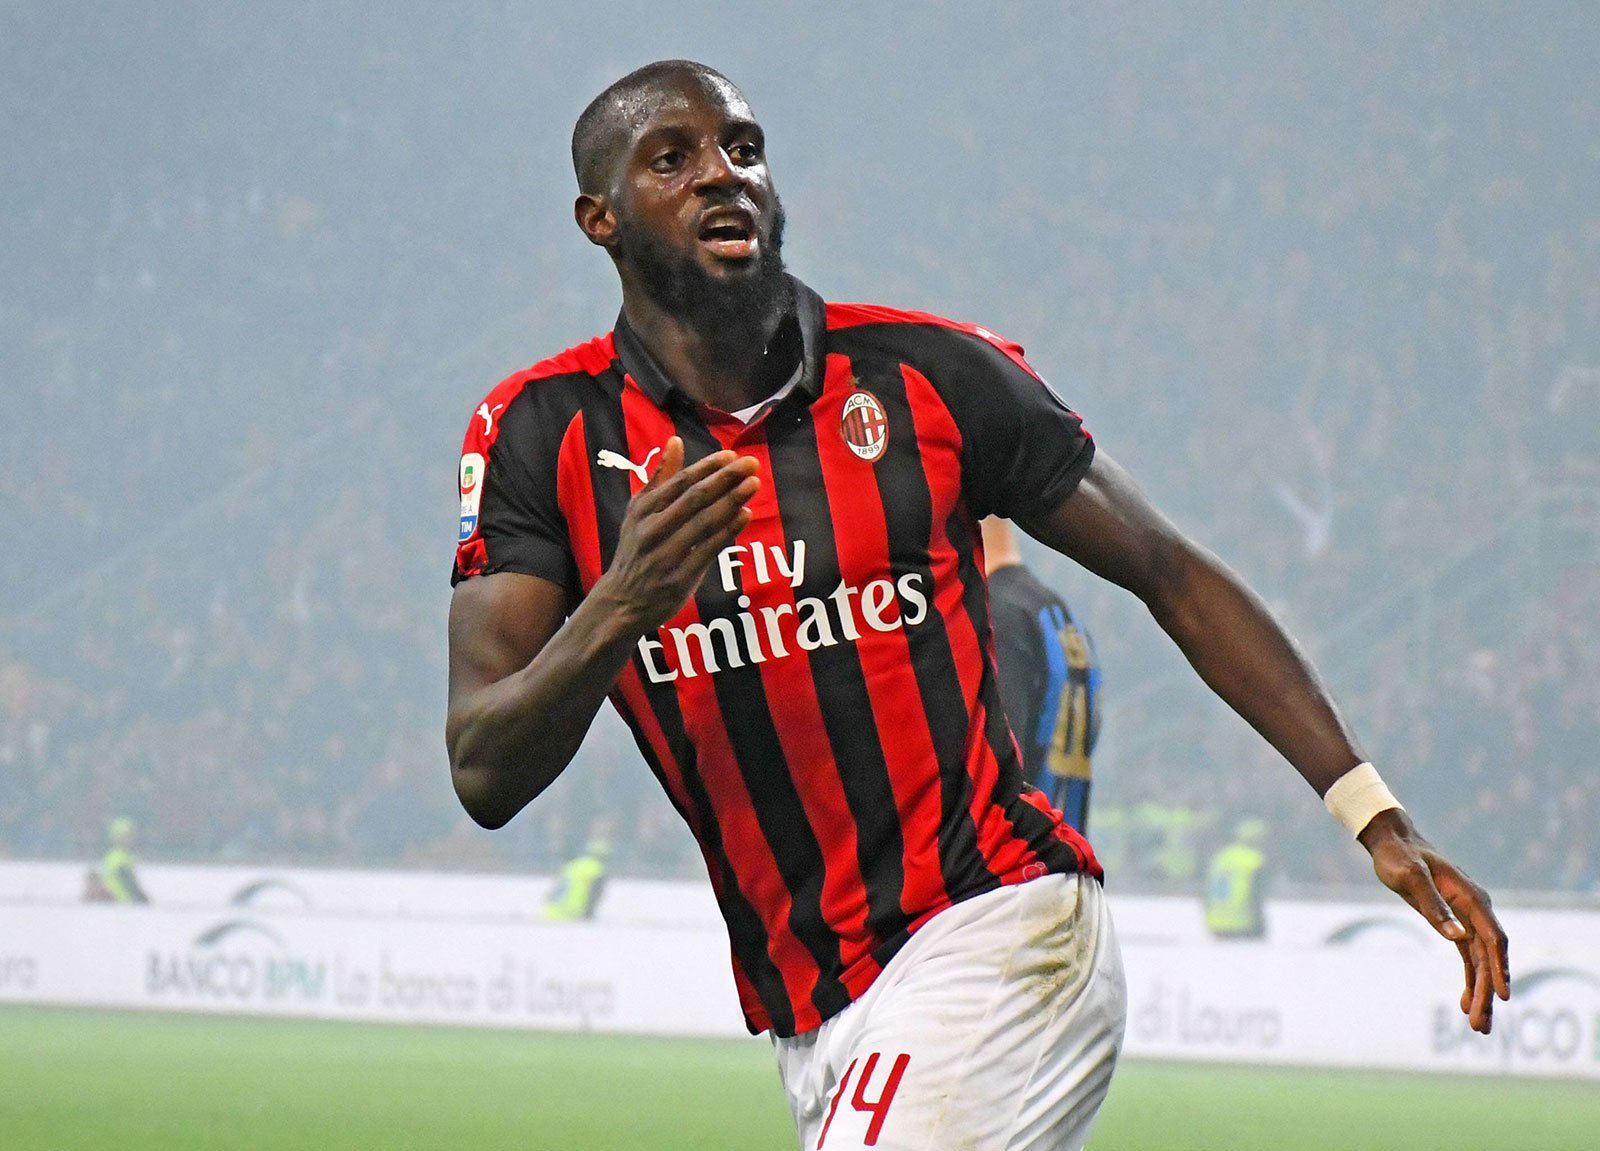 Milan and Chelsea reach an agreement over Bakayoko, the player is set to  return on loan with option to buy   Rossoneri Blog - AC Milan News